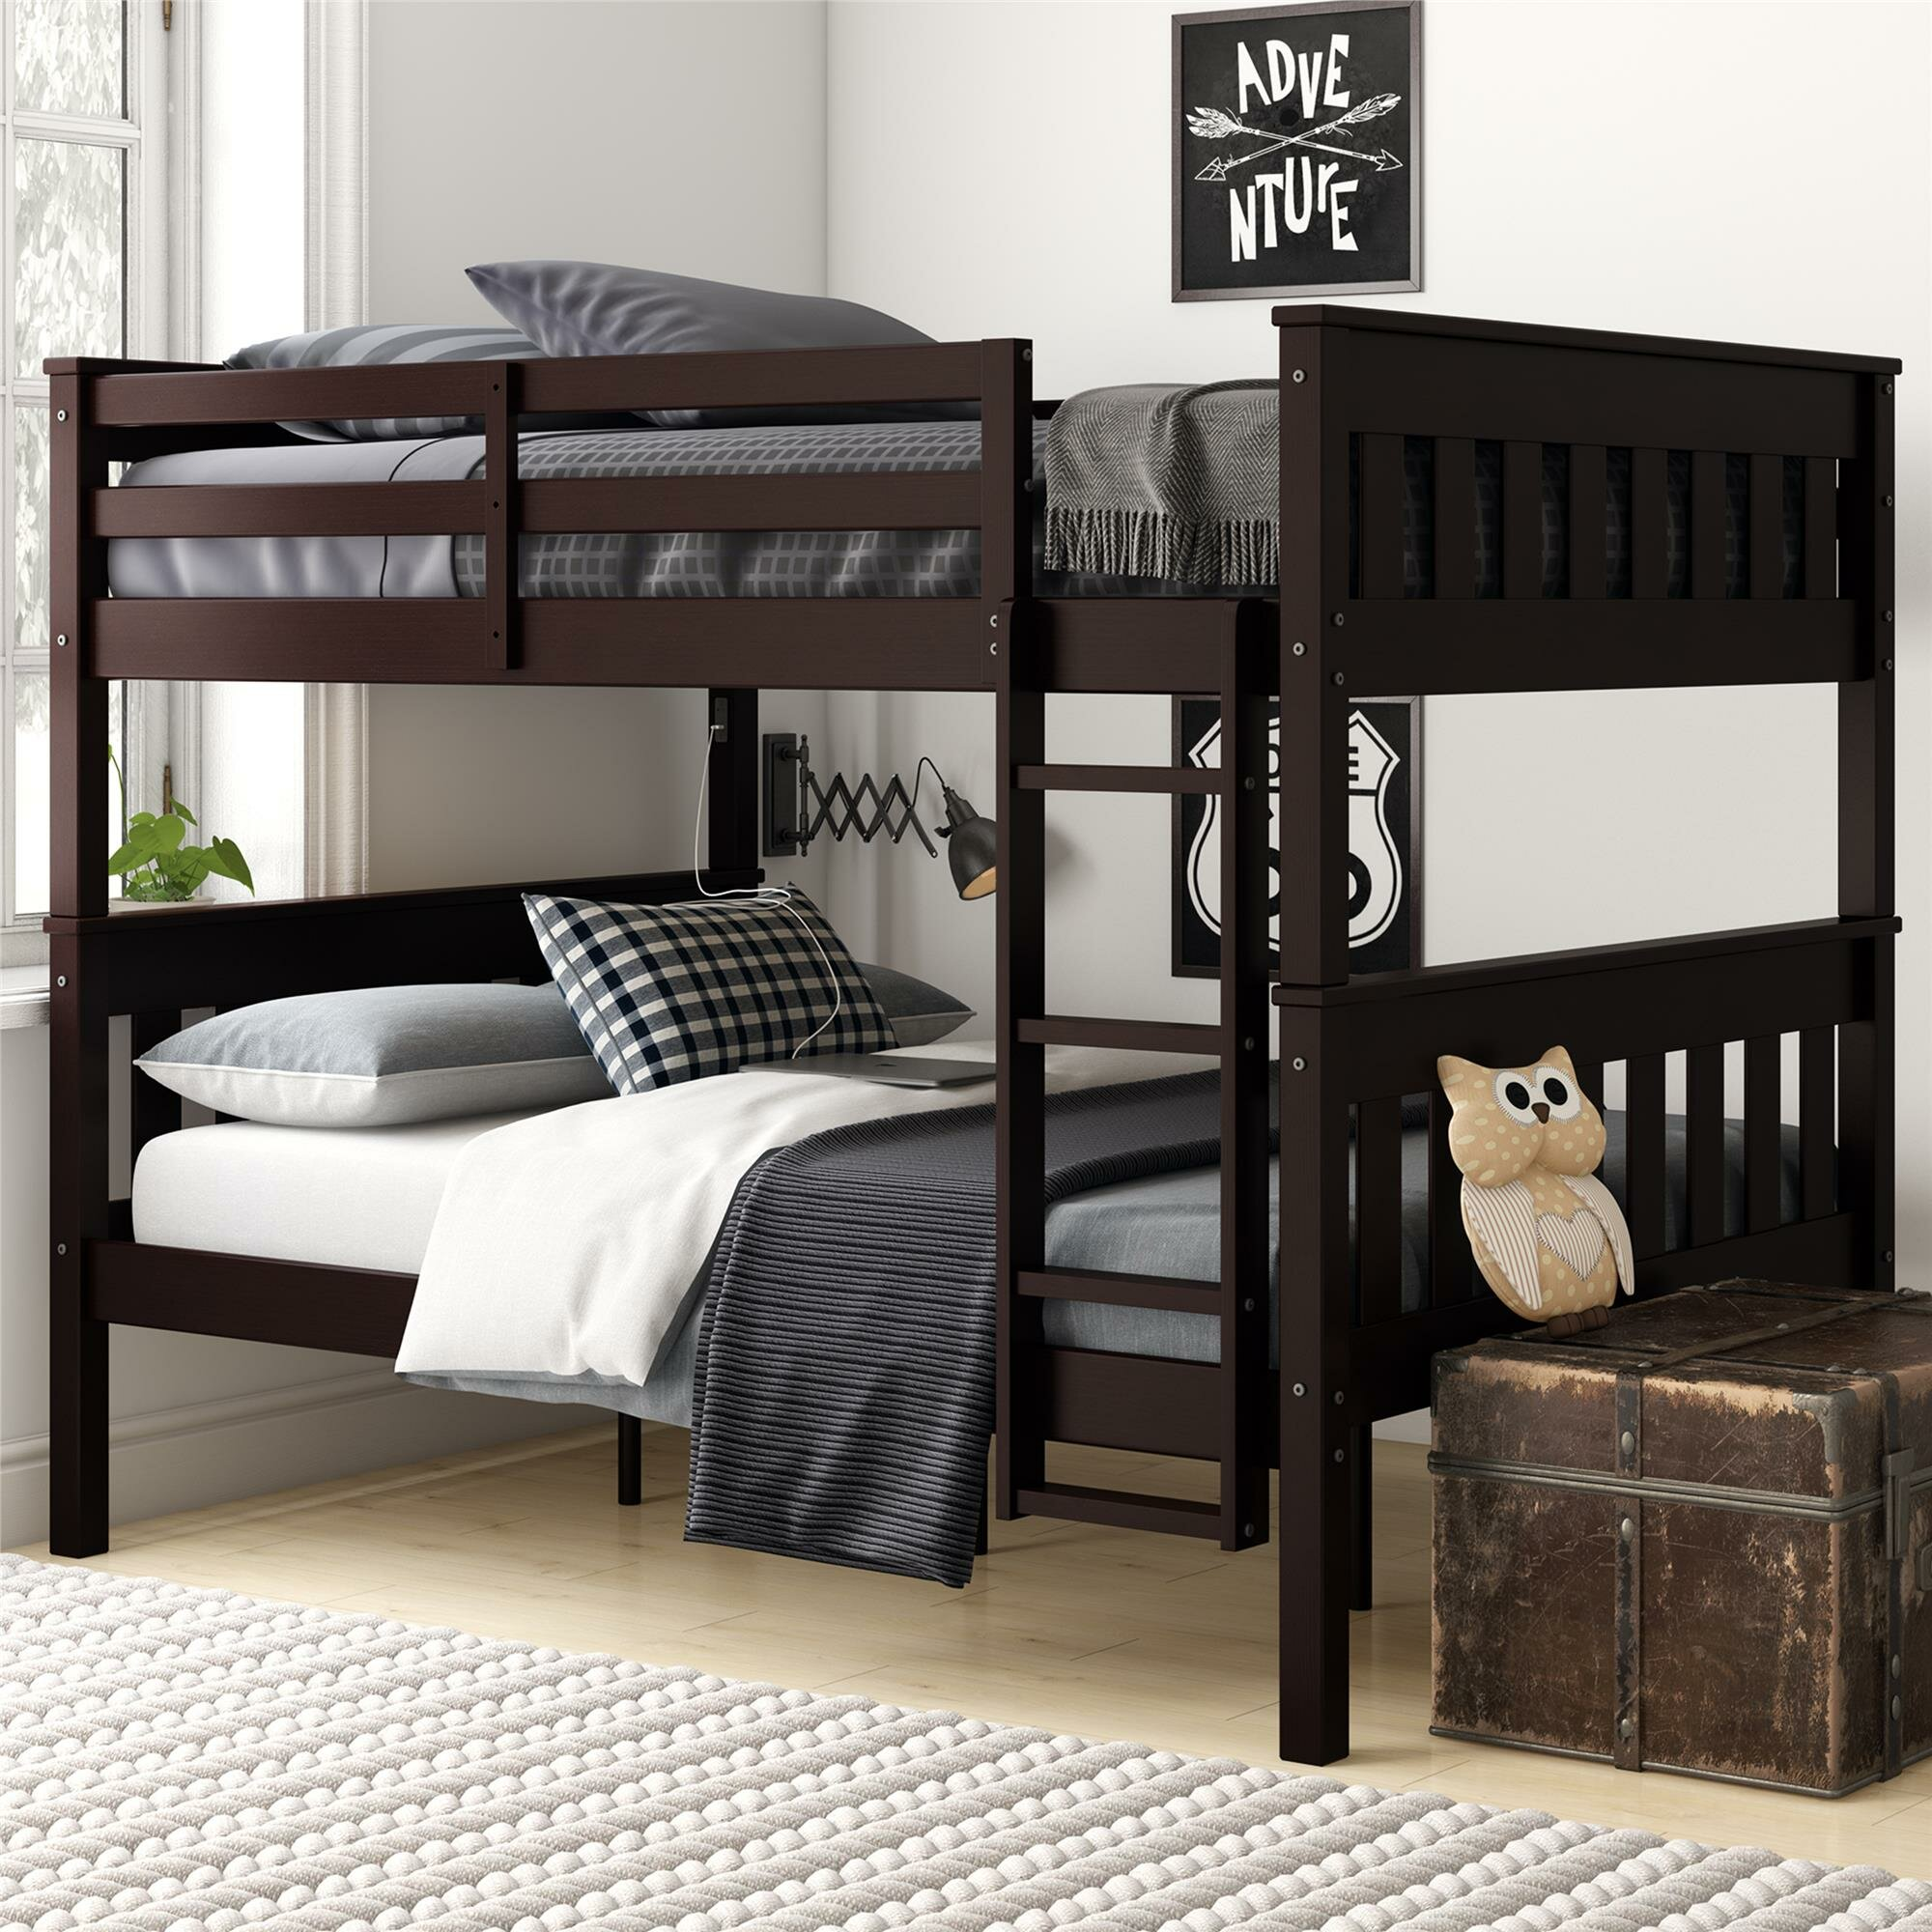 Almedacheatham Full Over Full Bunk Bed Reviews Birch Lane